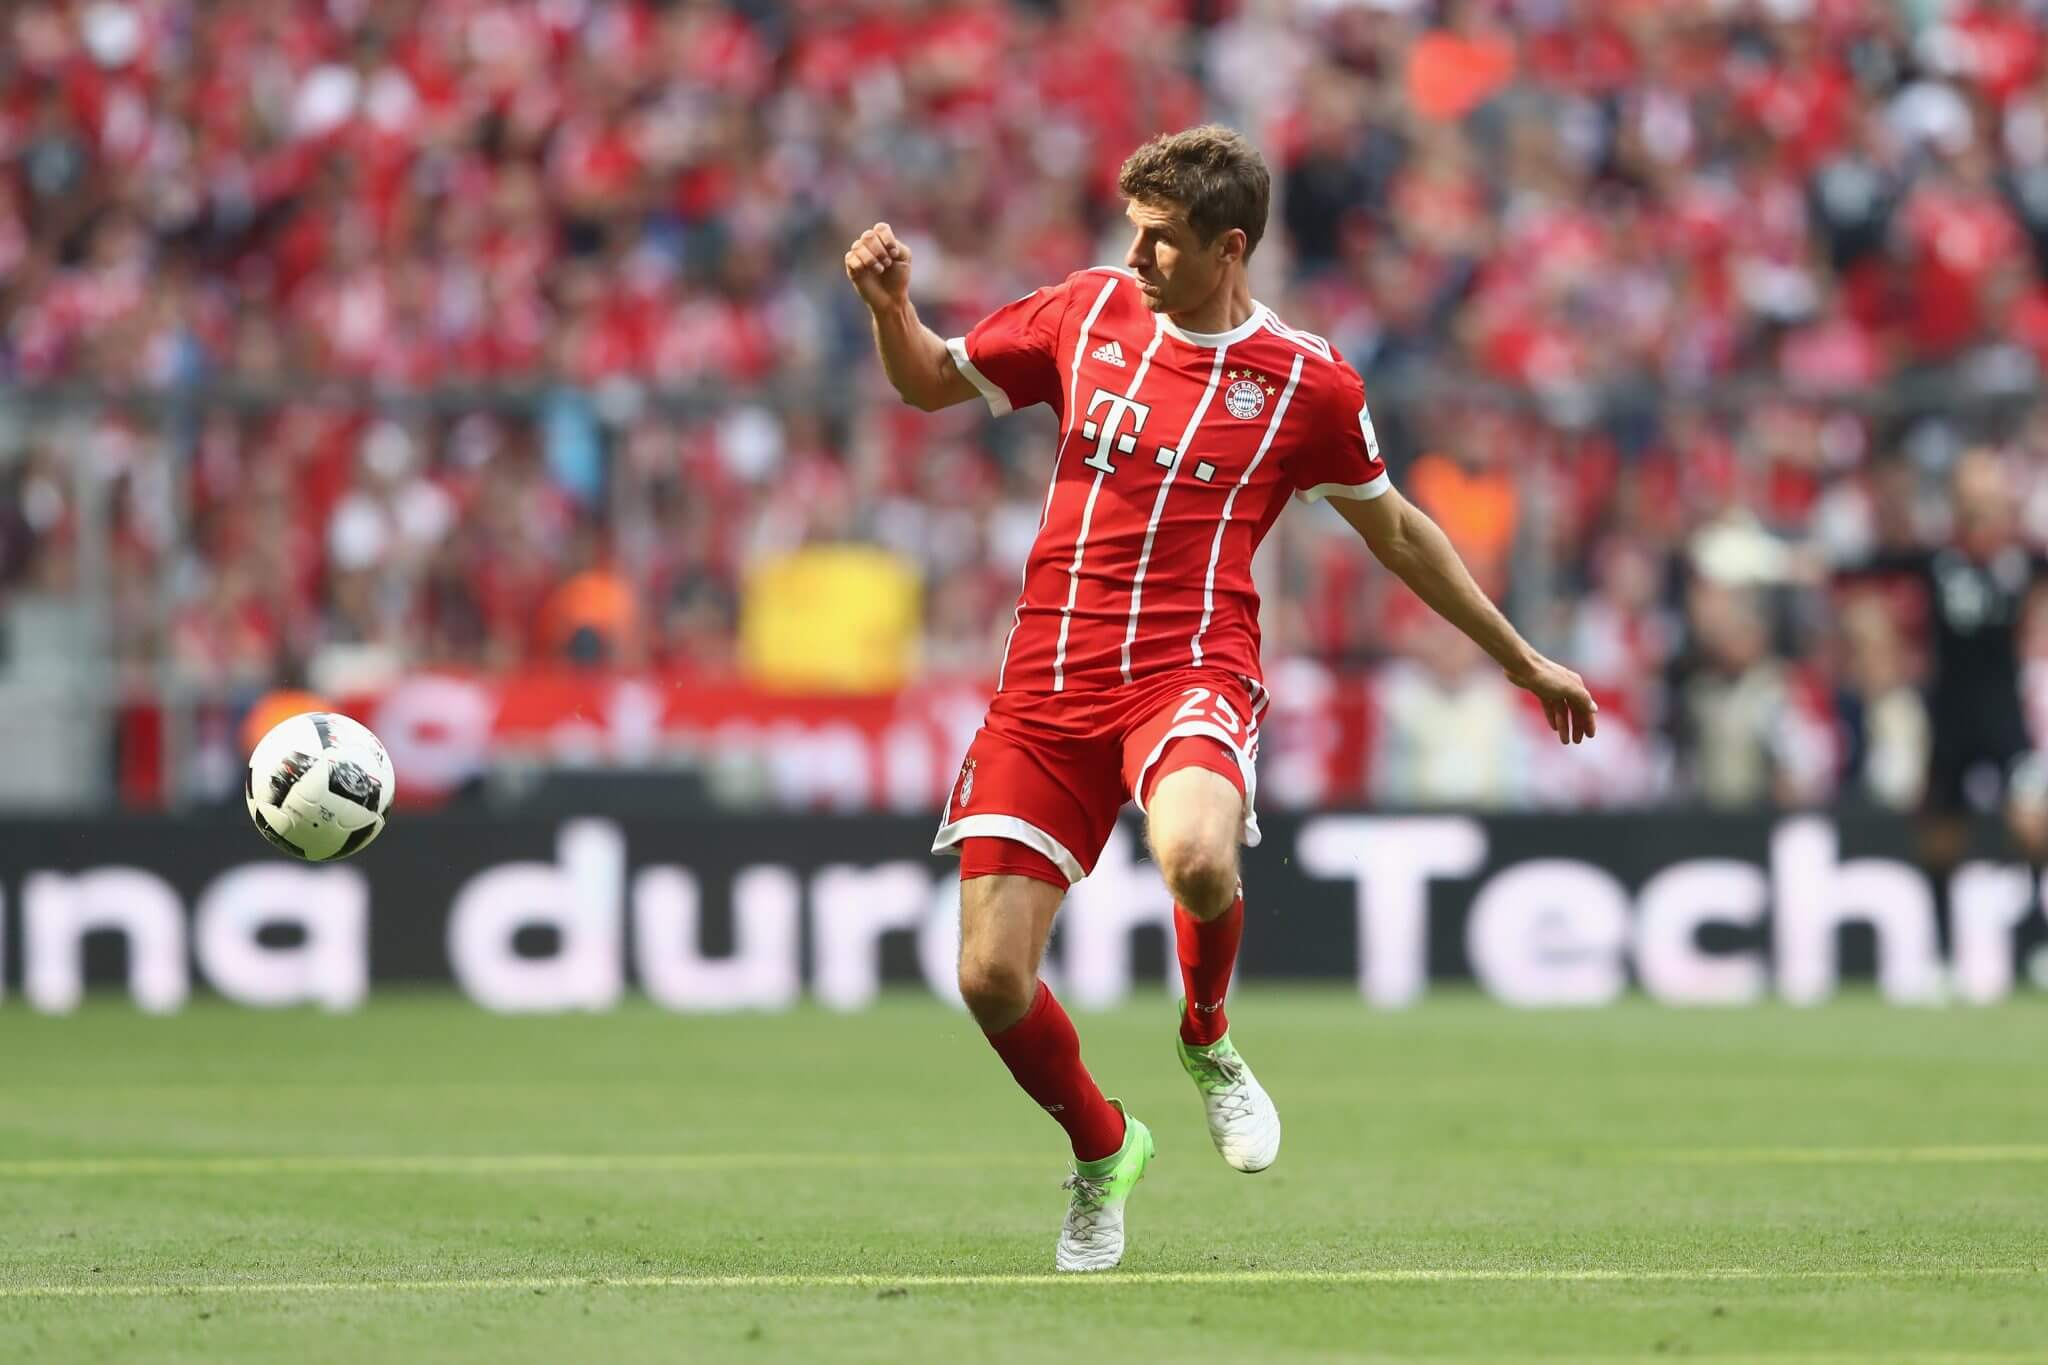 MUNICH, GERMANY - MAY 20: Thomas Mueller of Bayern Muenchen runs with the ball during the Bundesliga match between Bayern Muenchen and SC Freiburg at Allianz Arena on May 20, 2017 in Munich, Germany. (Photo by Alexander Hassenstein/Bongarts/Getty Images)